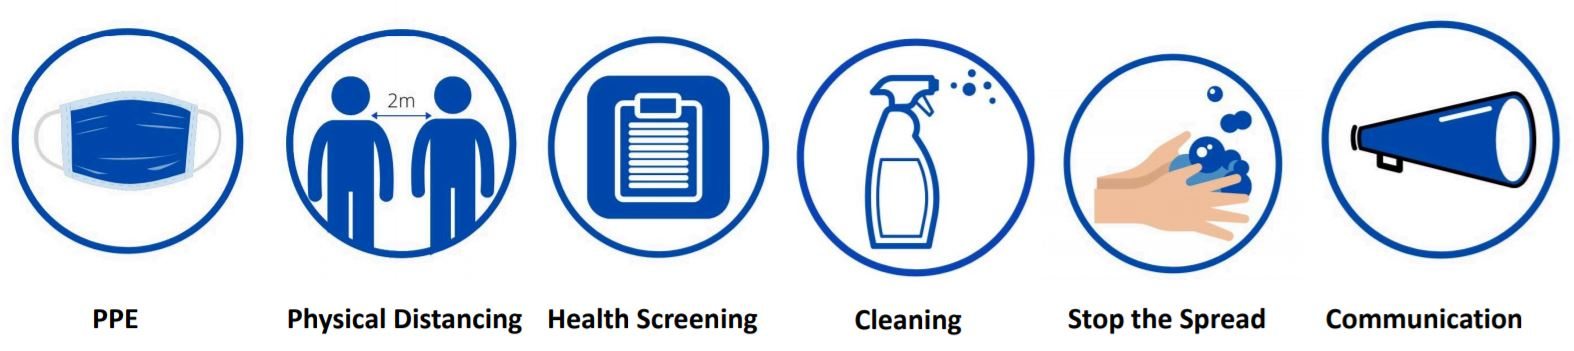 safe work environments during COVID-19 include PPE, physical distancing and frequent cleaning of hands and surfaces